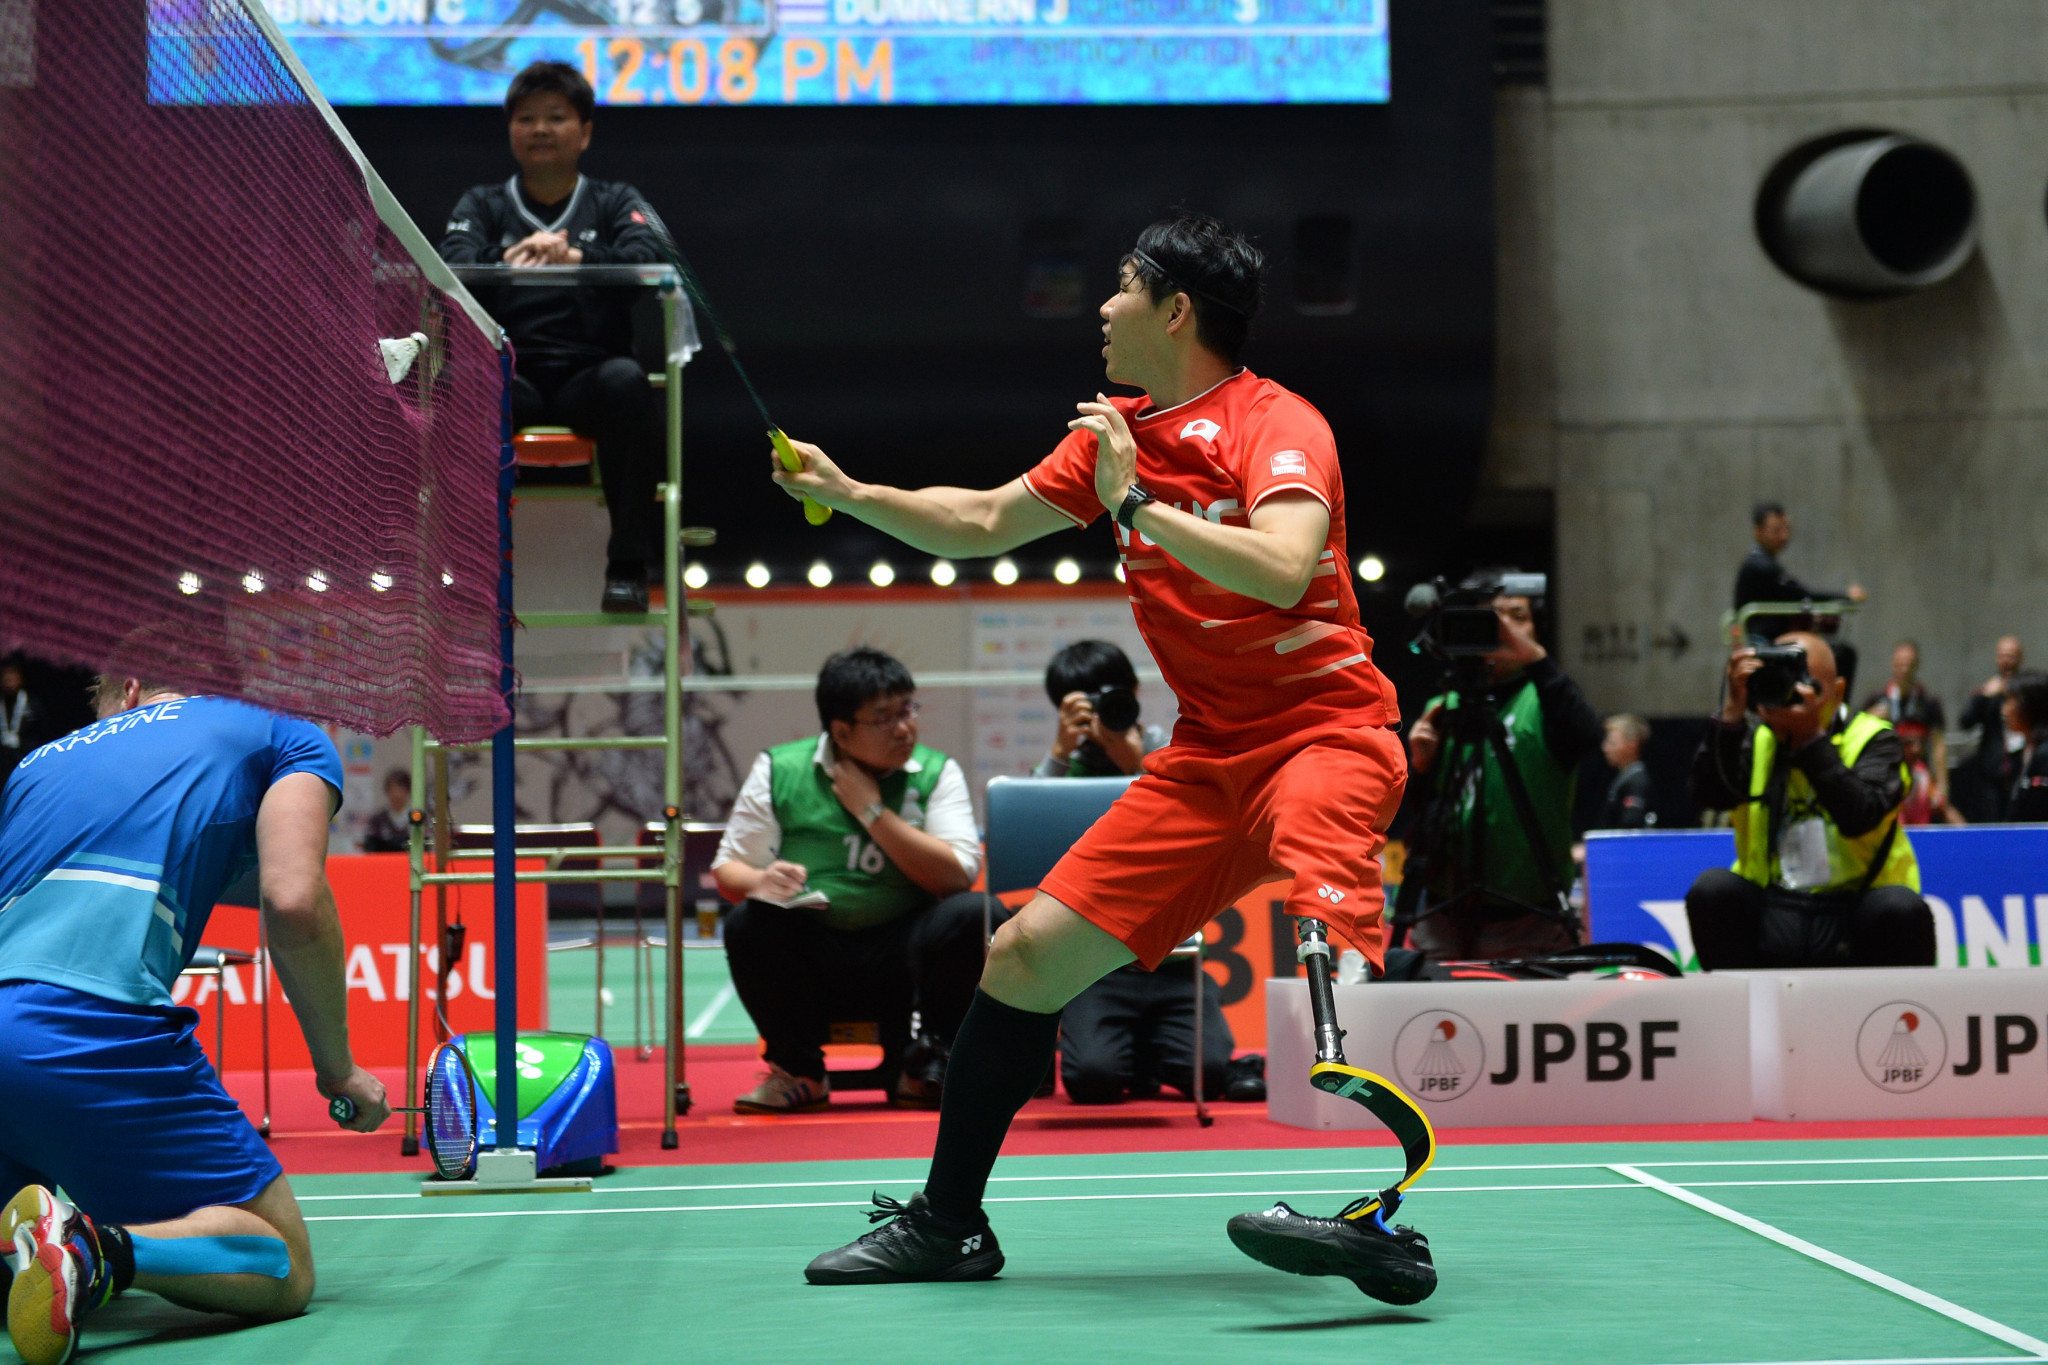 Daisuke Fujihara of Japan was knocked out of the Tokyo 2020 Para-badminton test event in the quarter-finals ©BWF